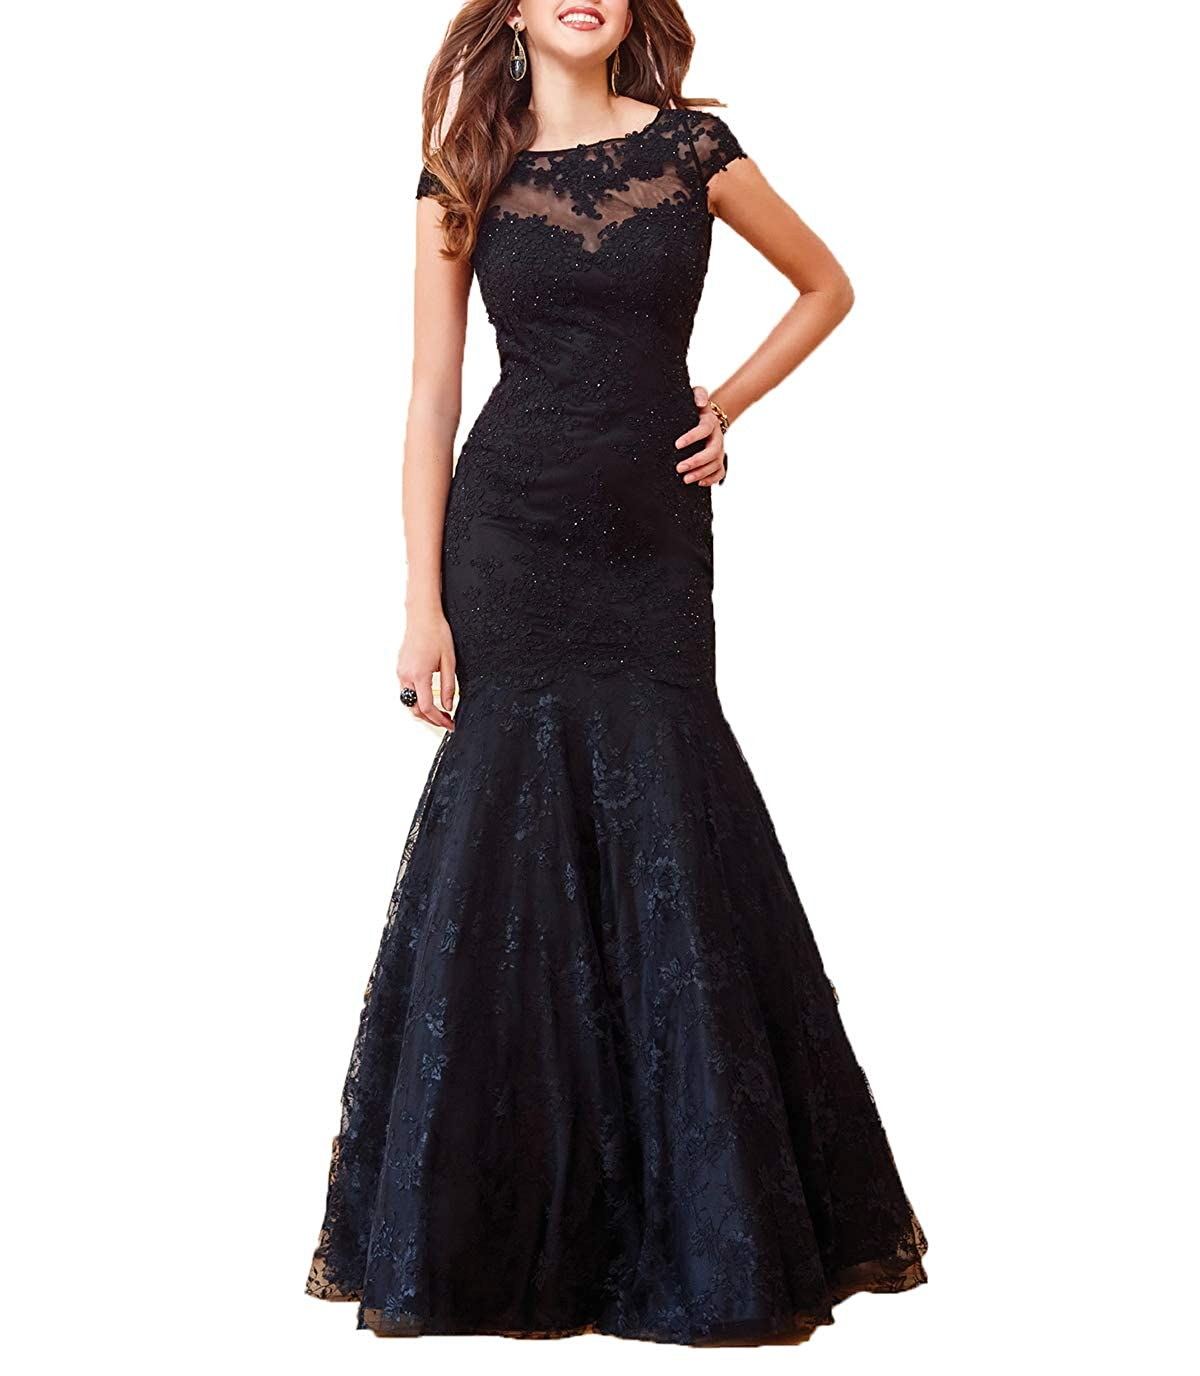 Black Wanshaqin Cap Sleeve Lace Mermaid Prom Formal Dresses Evening Cocktail Dress Bridesmaid Gowns for Events Party